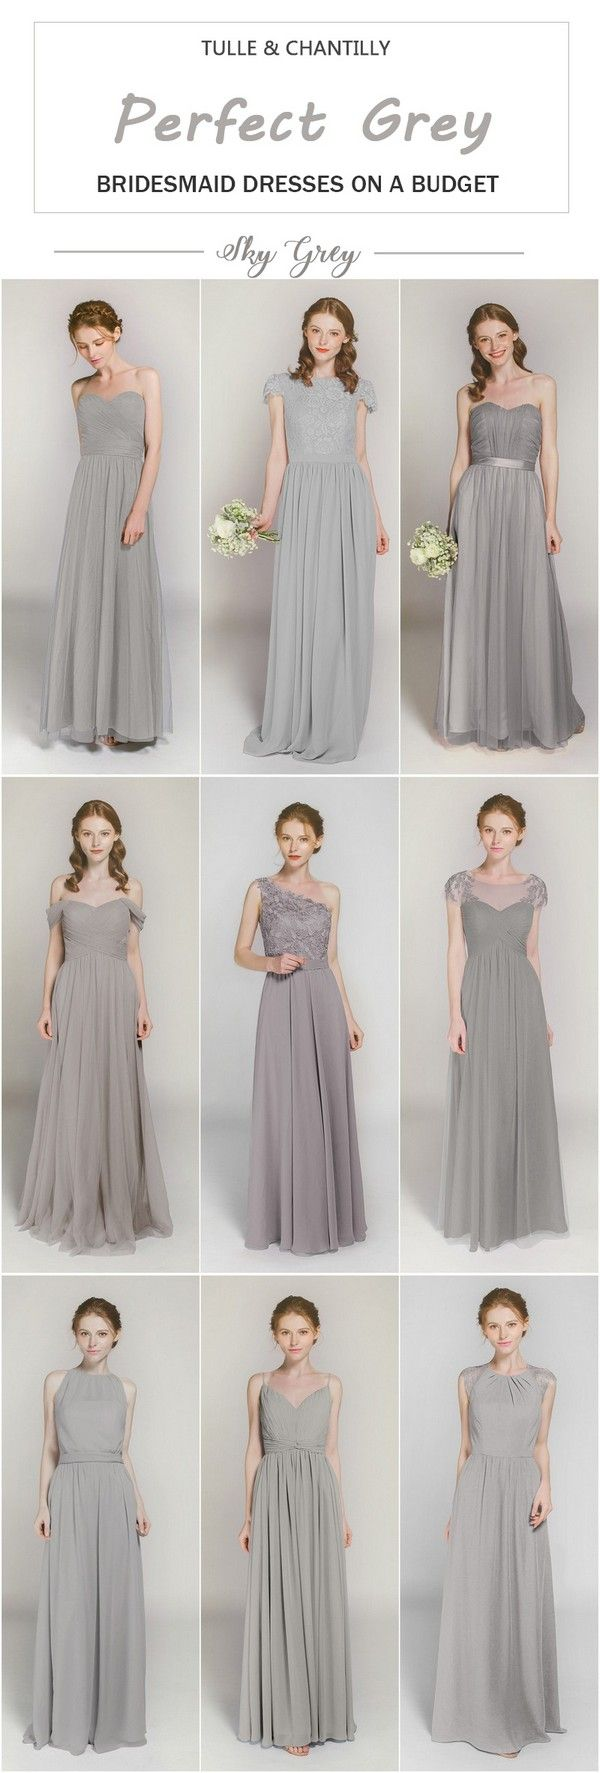 Sky Gray bridesmaid dresses on a budget